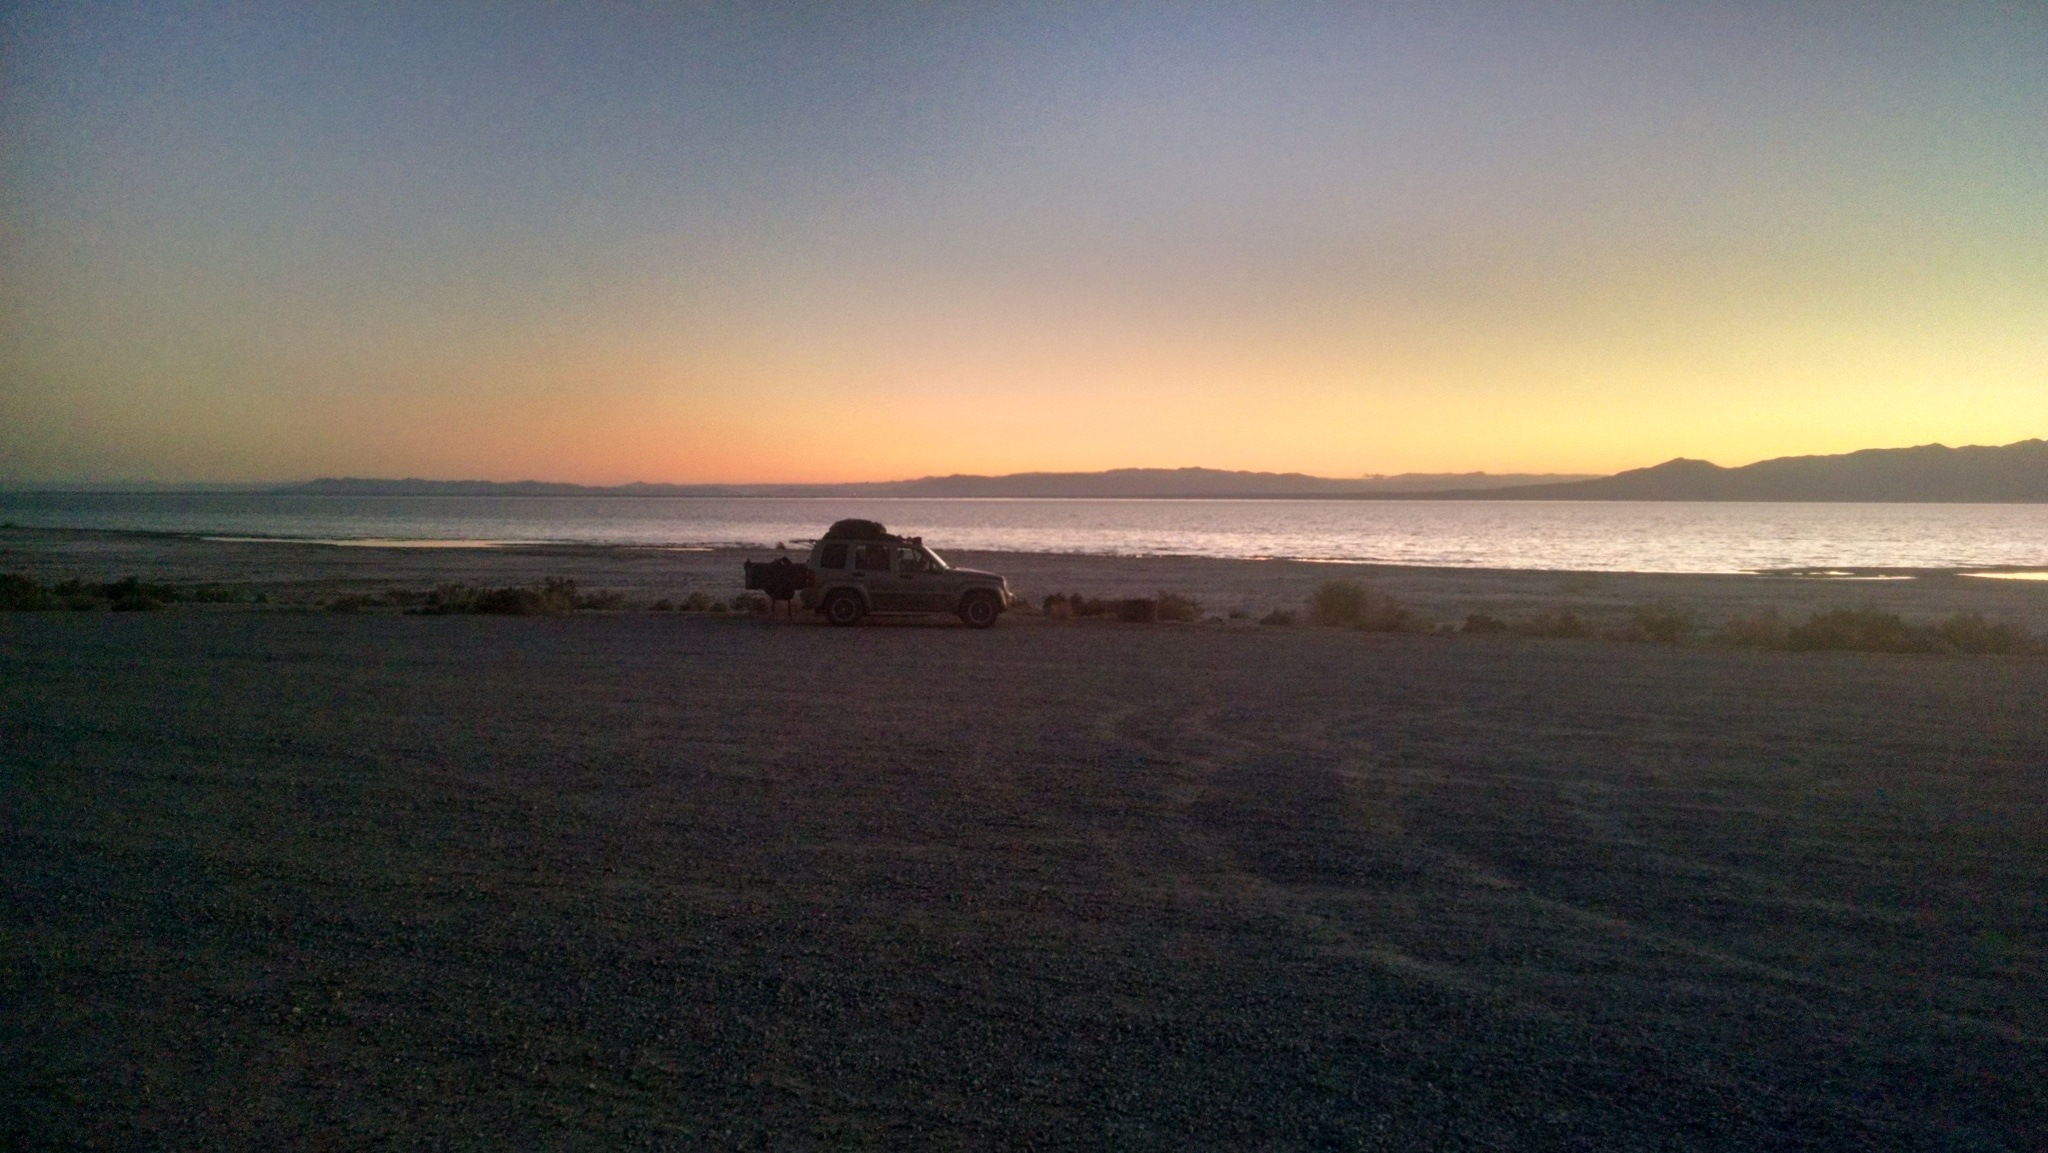 March 8th 2016 – Salton Sea